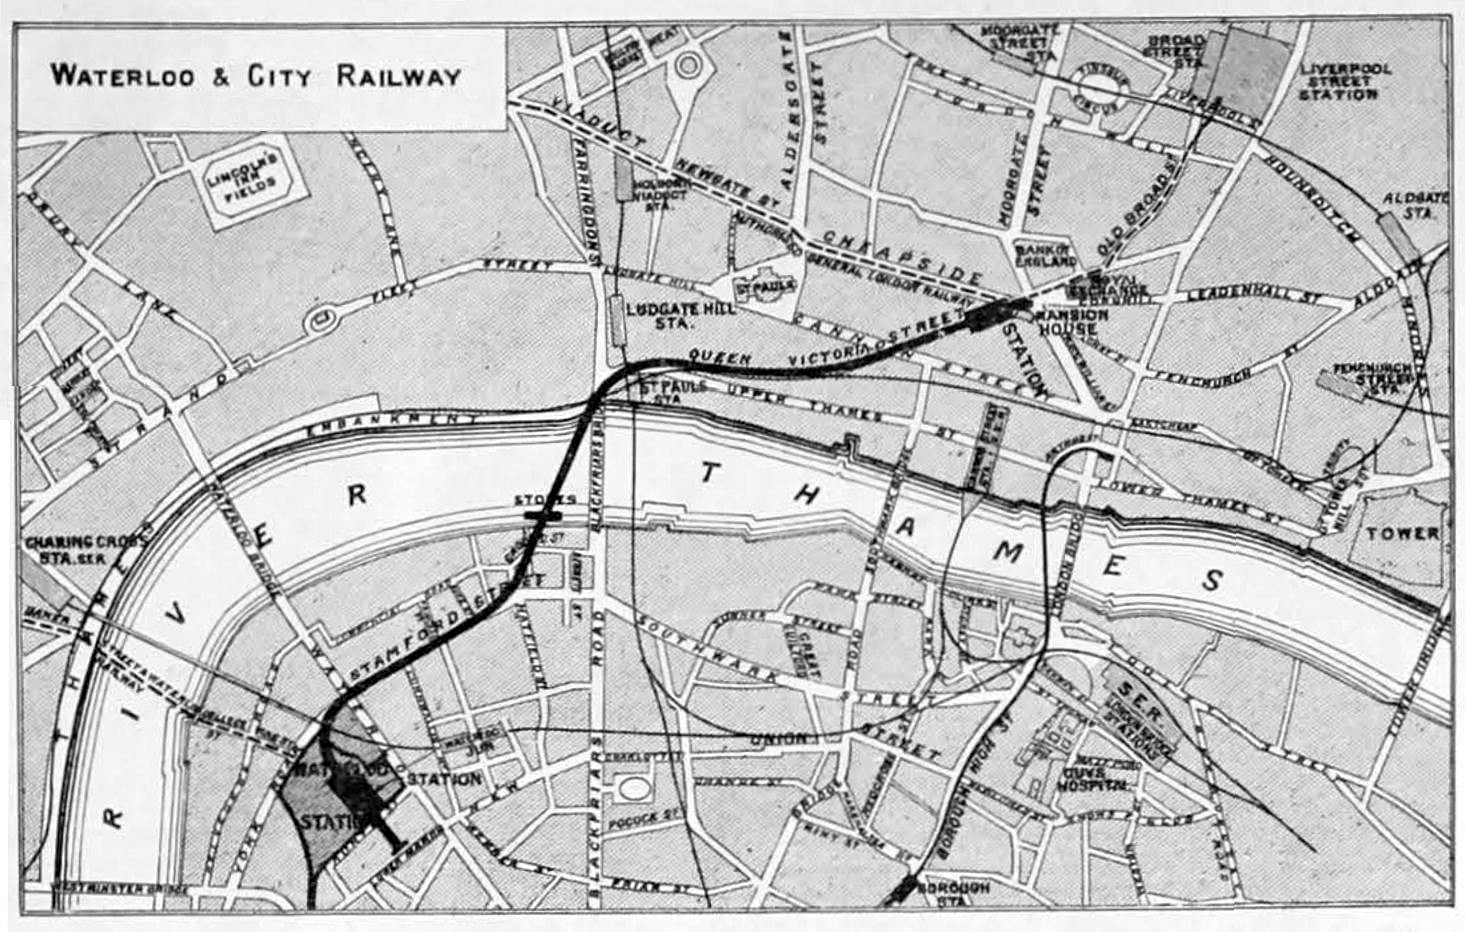 Route of the Waterloo & City Railway (image: Wikipedia)